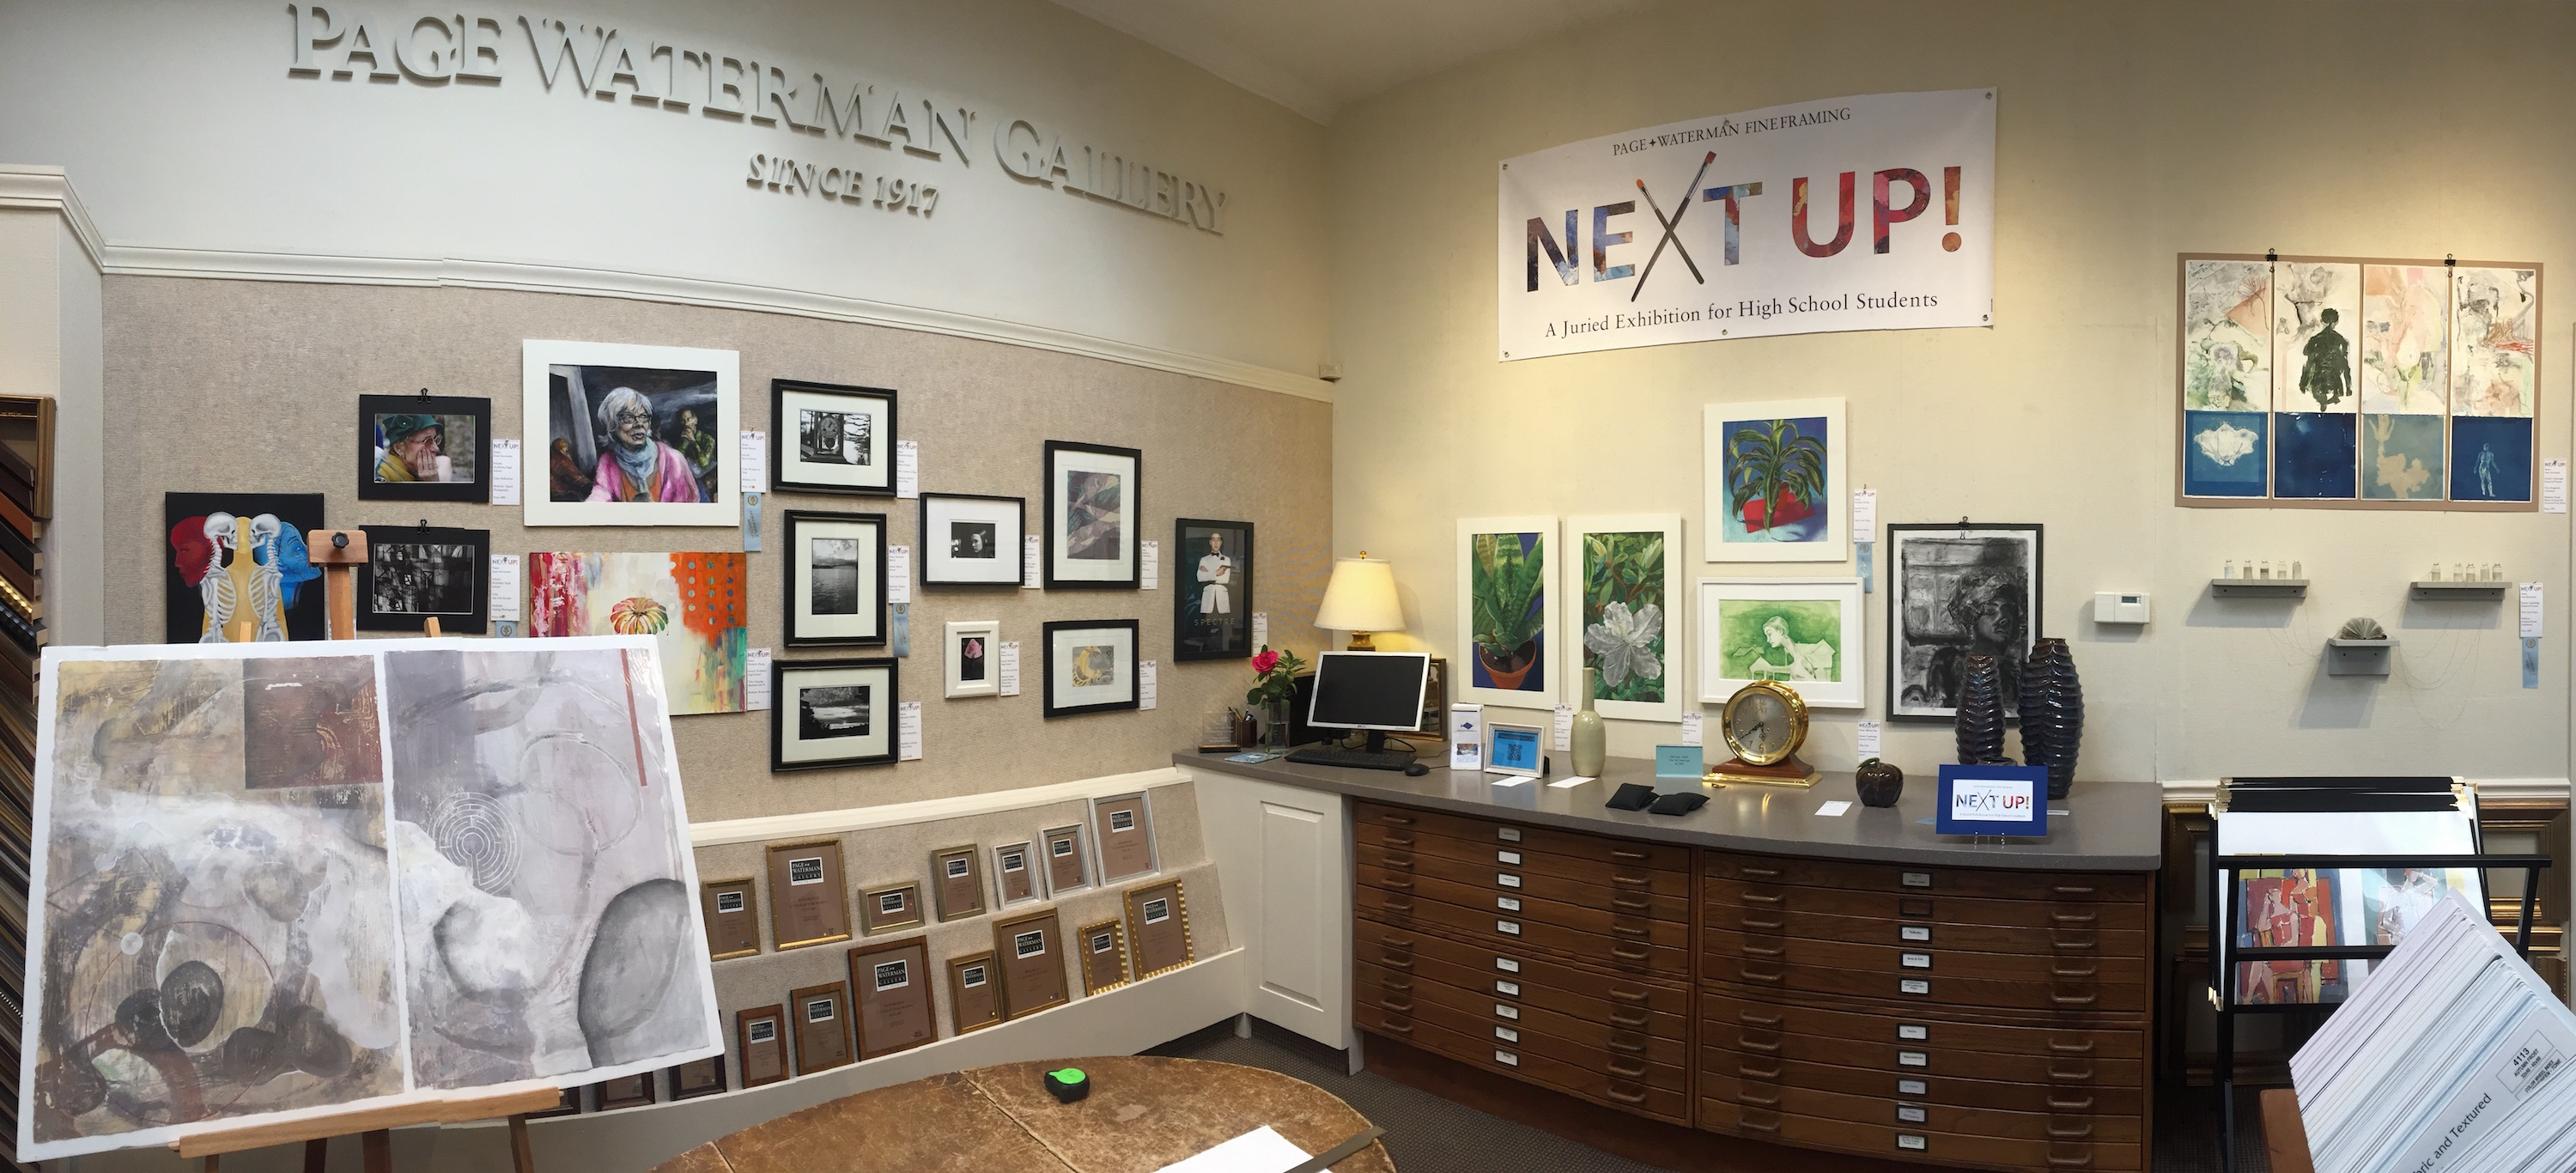 The Next Up! 2017 Reception is ready in the Gallery at Page Waterman Fine Framing, Wellesley